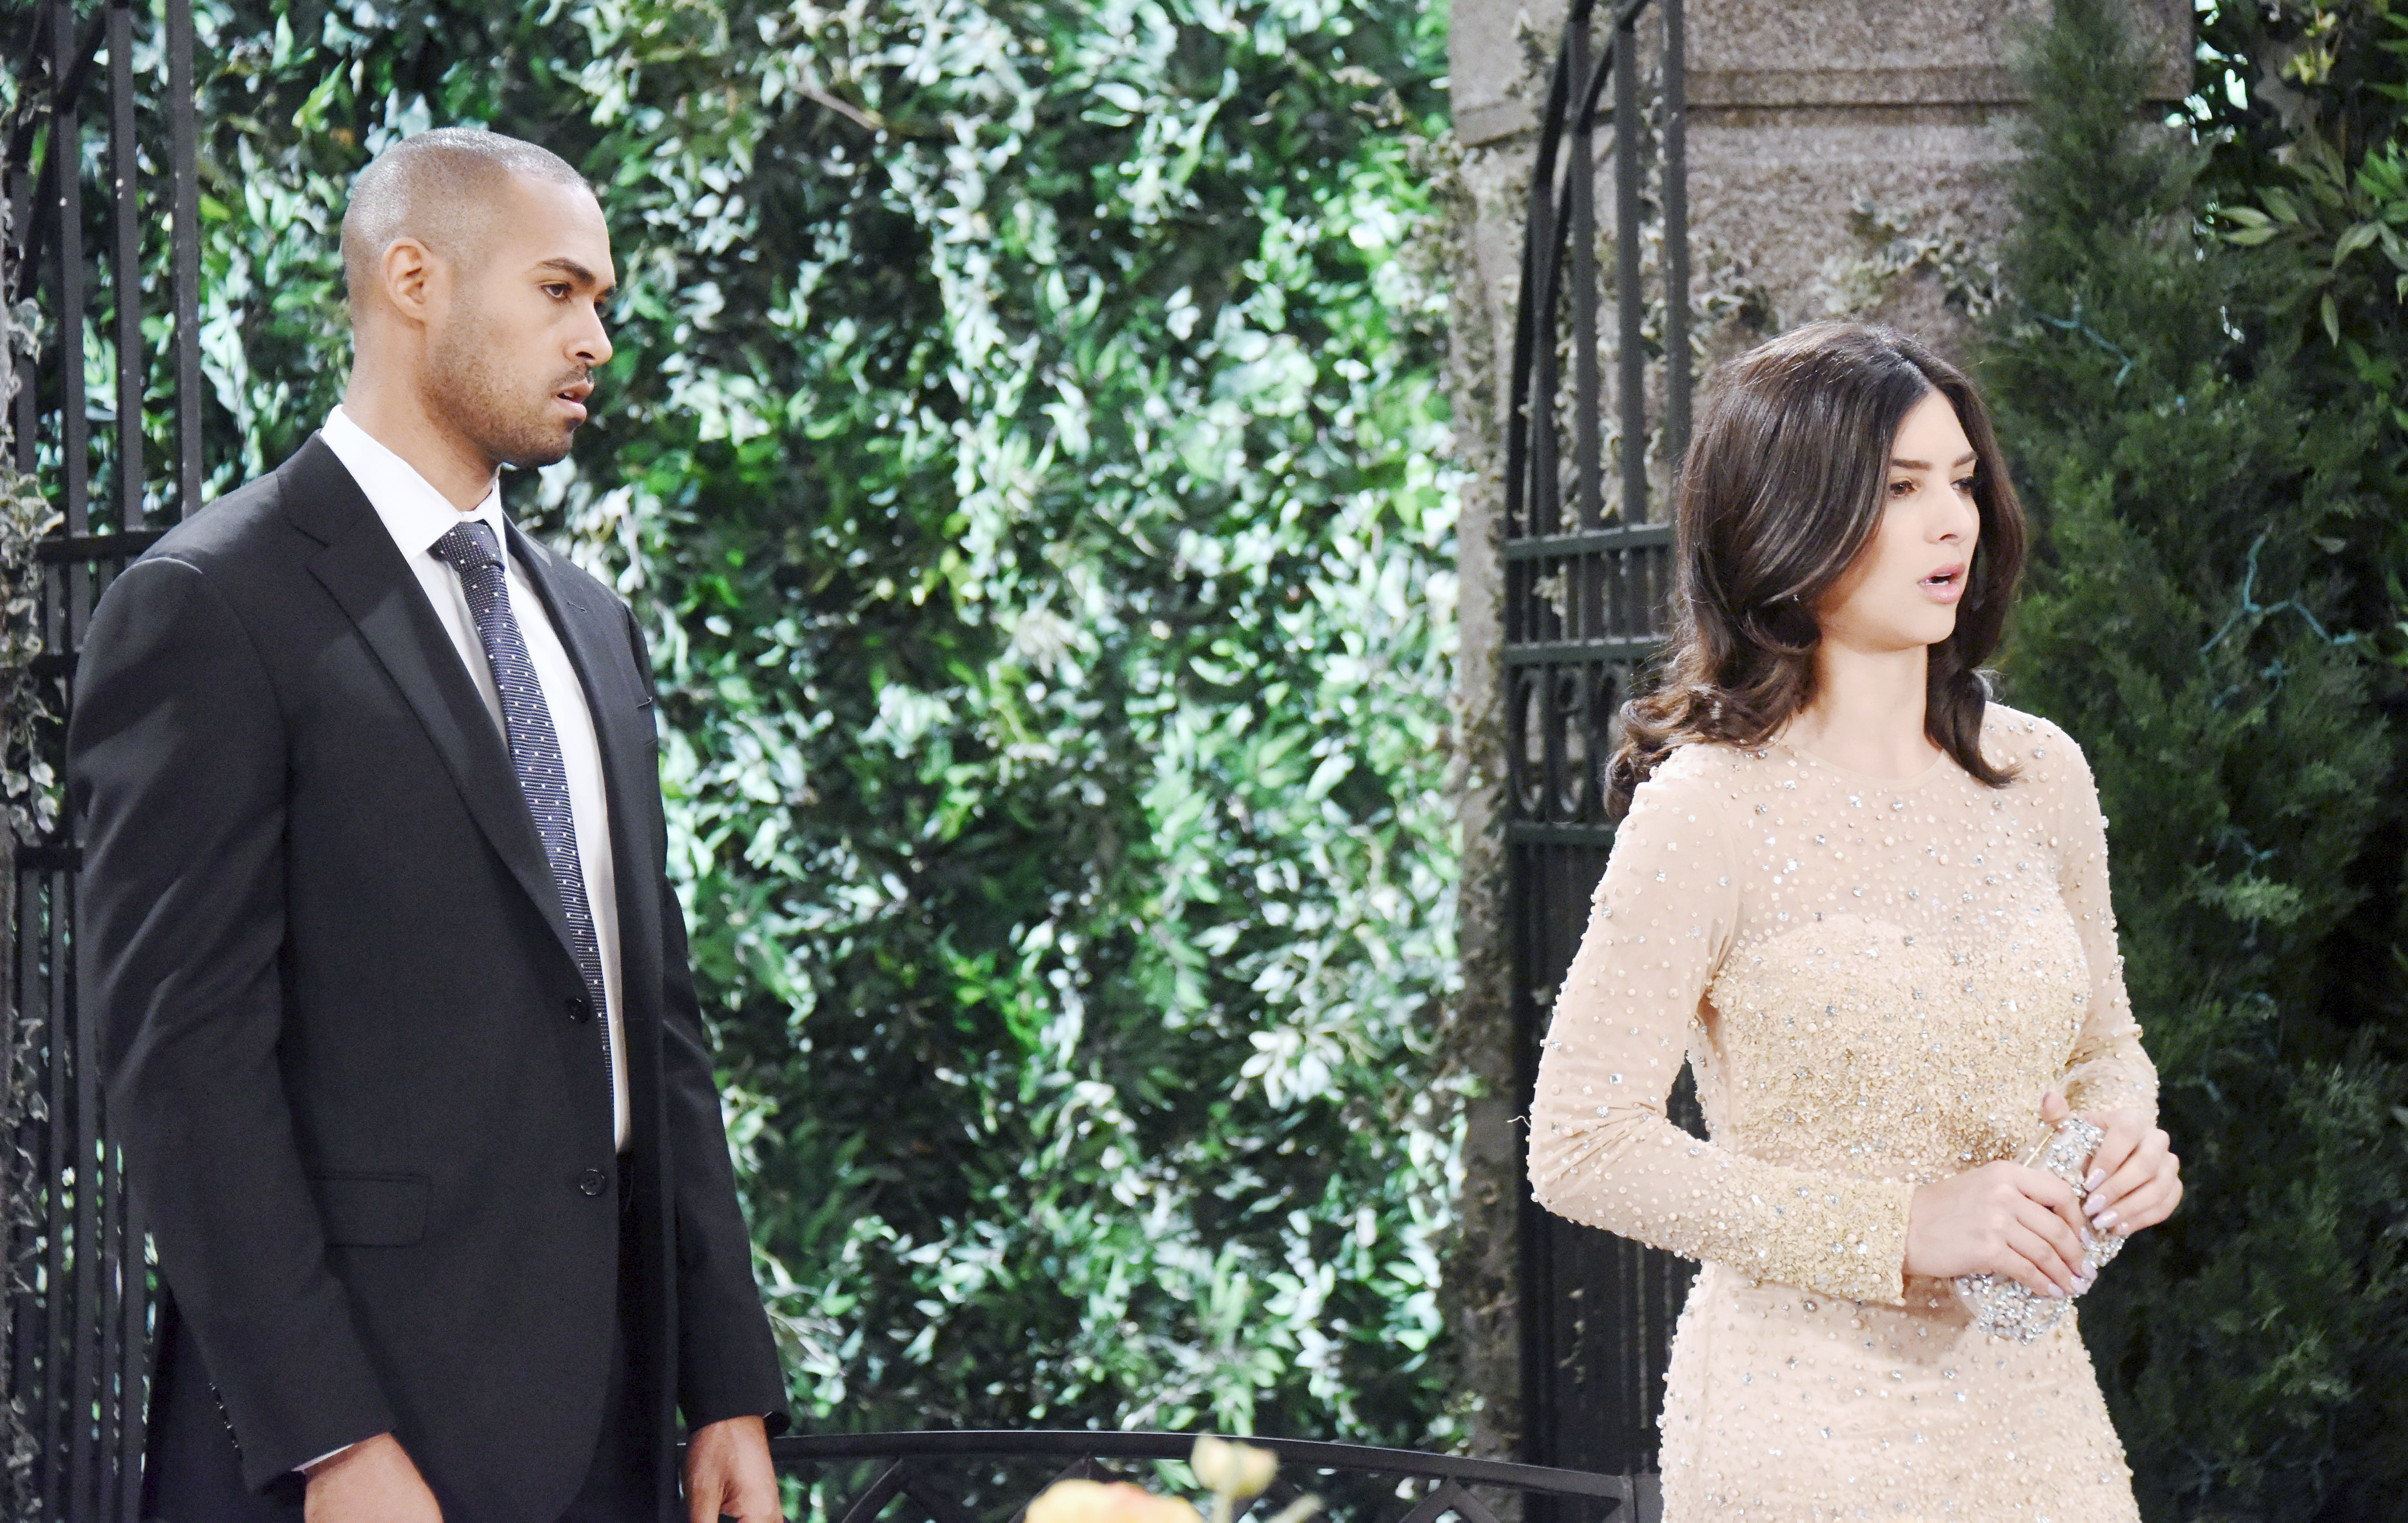 Days of Our Lives Spoilers: Coming up October 16th – October 20th